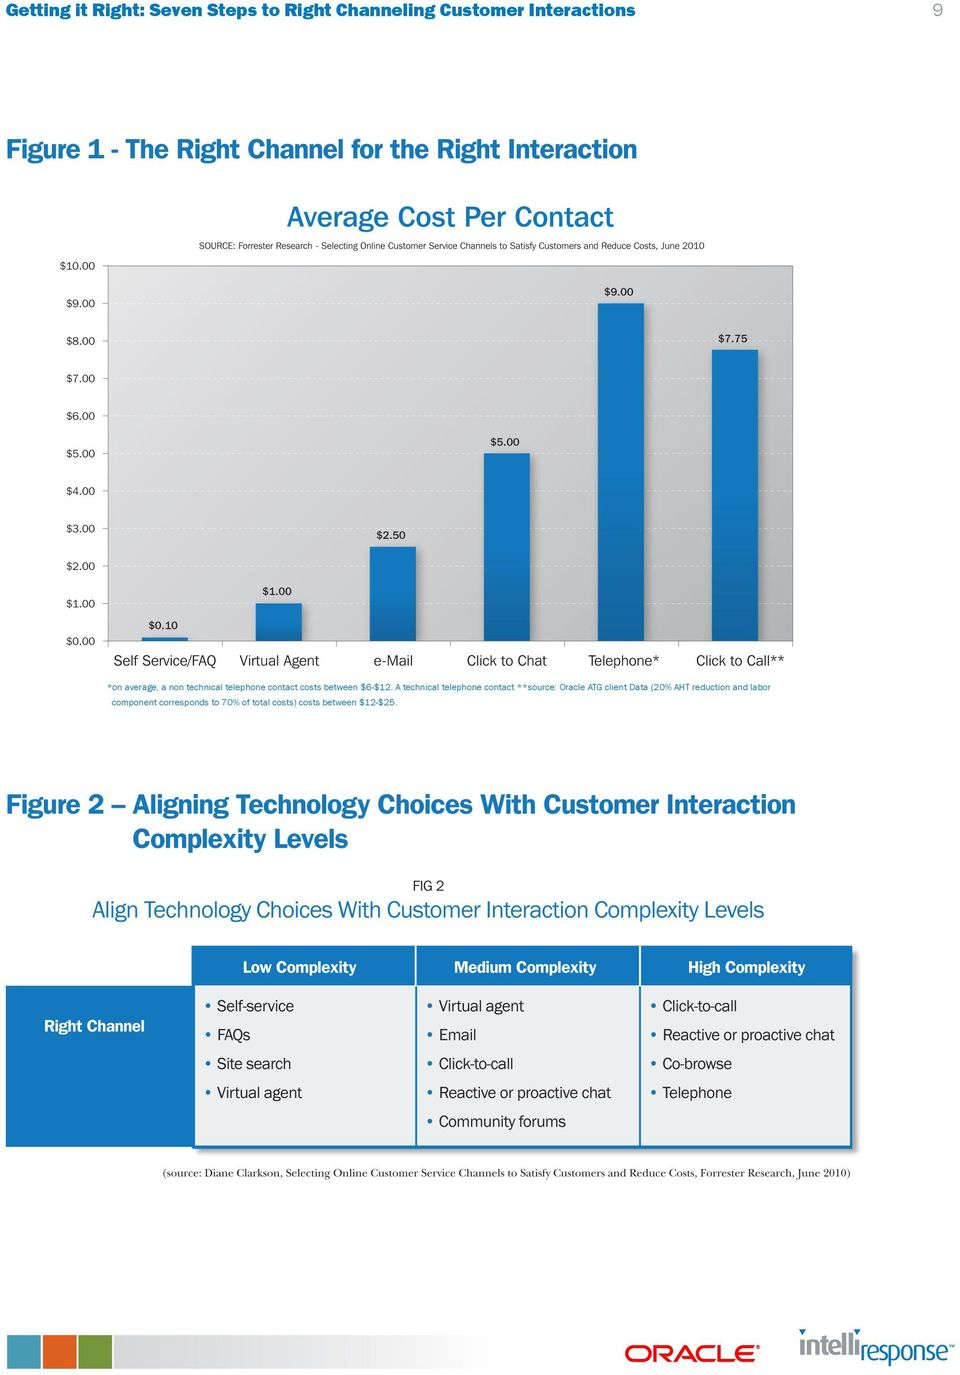 A technical telephone contact **source: Oracle ATG client Data (20% AHT